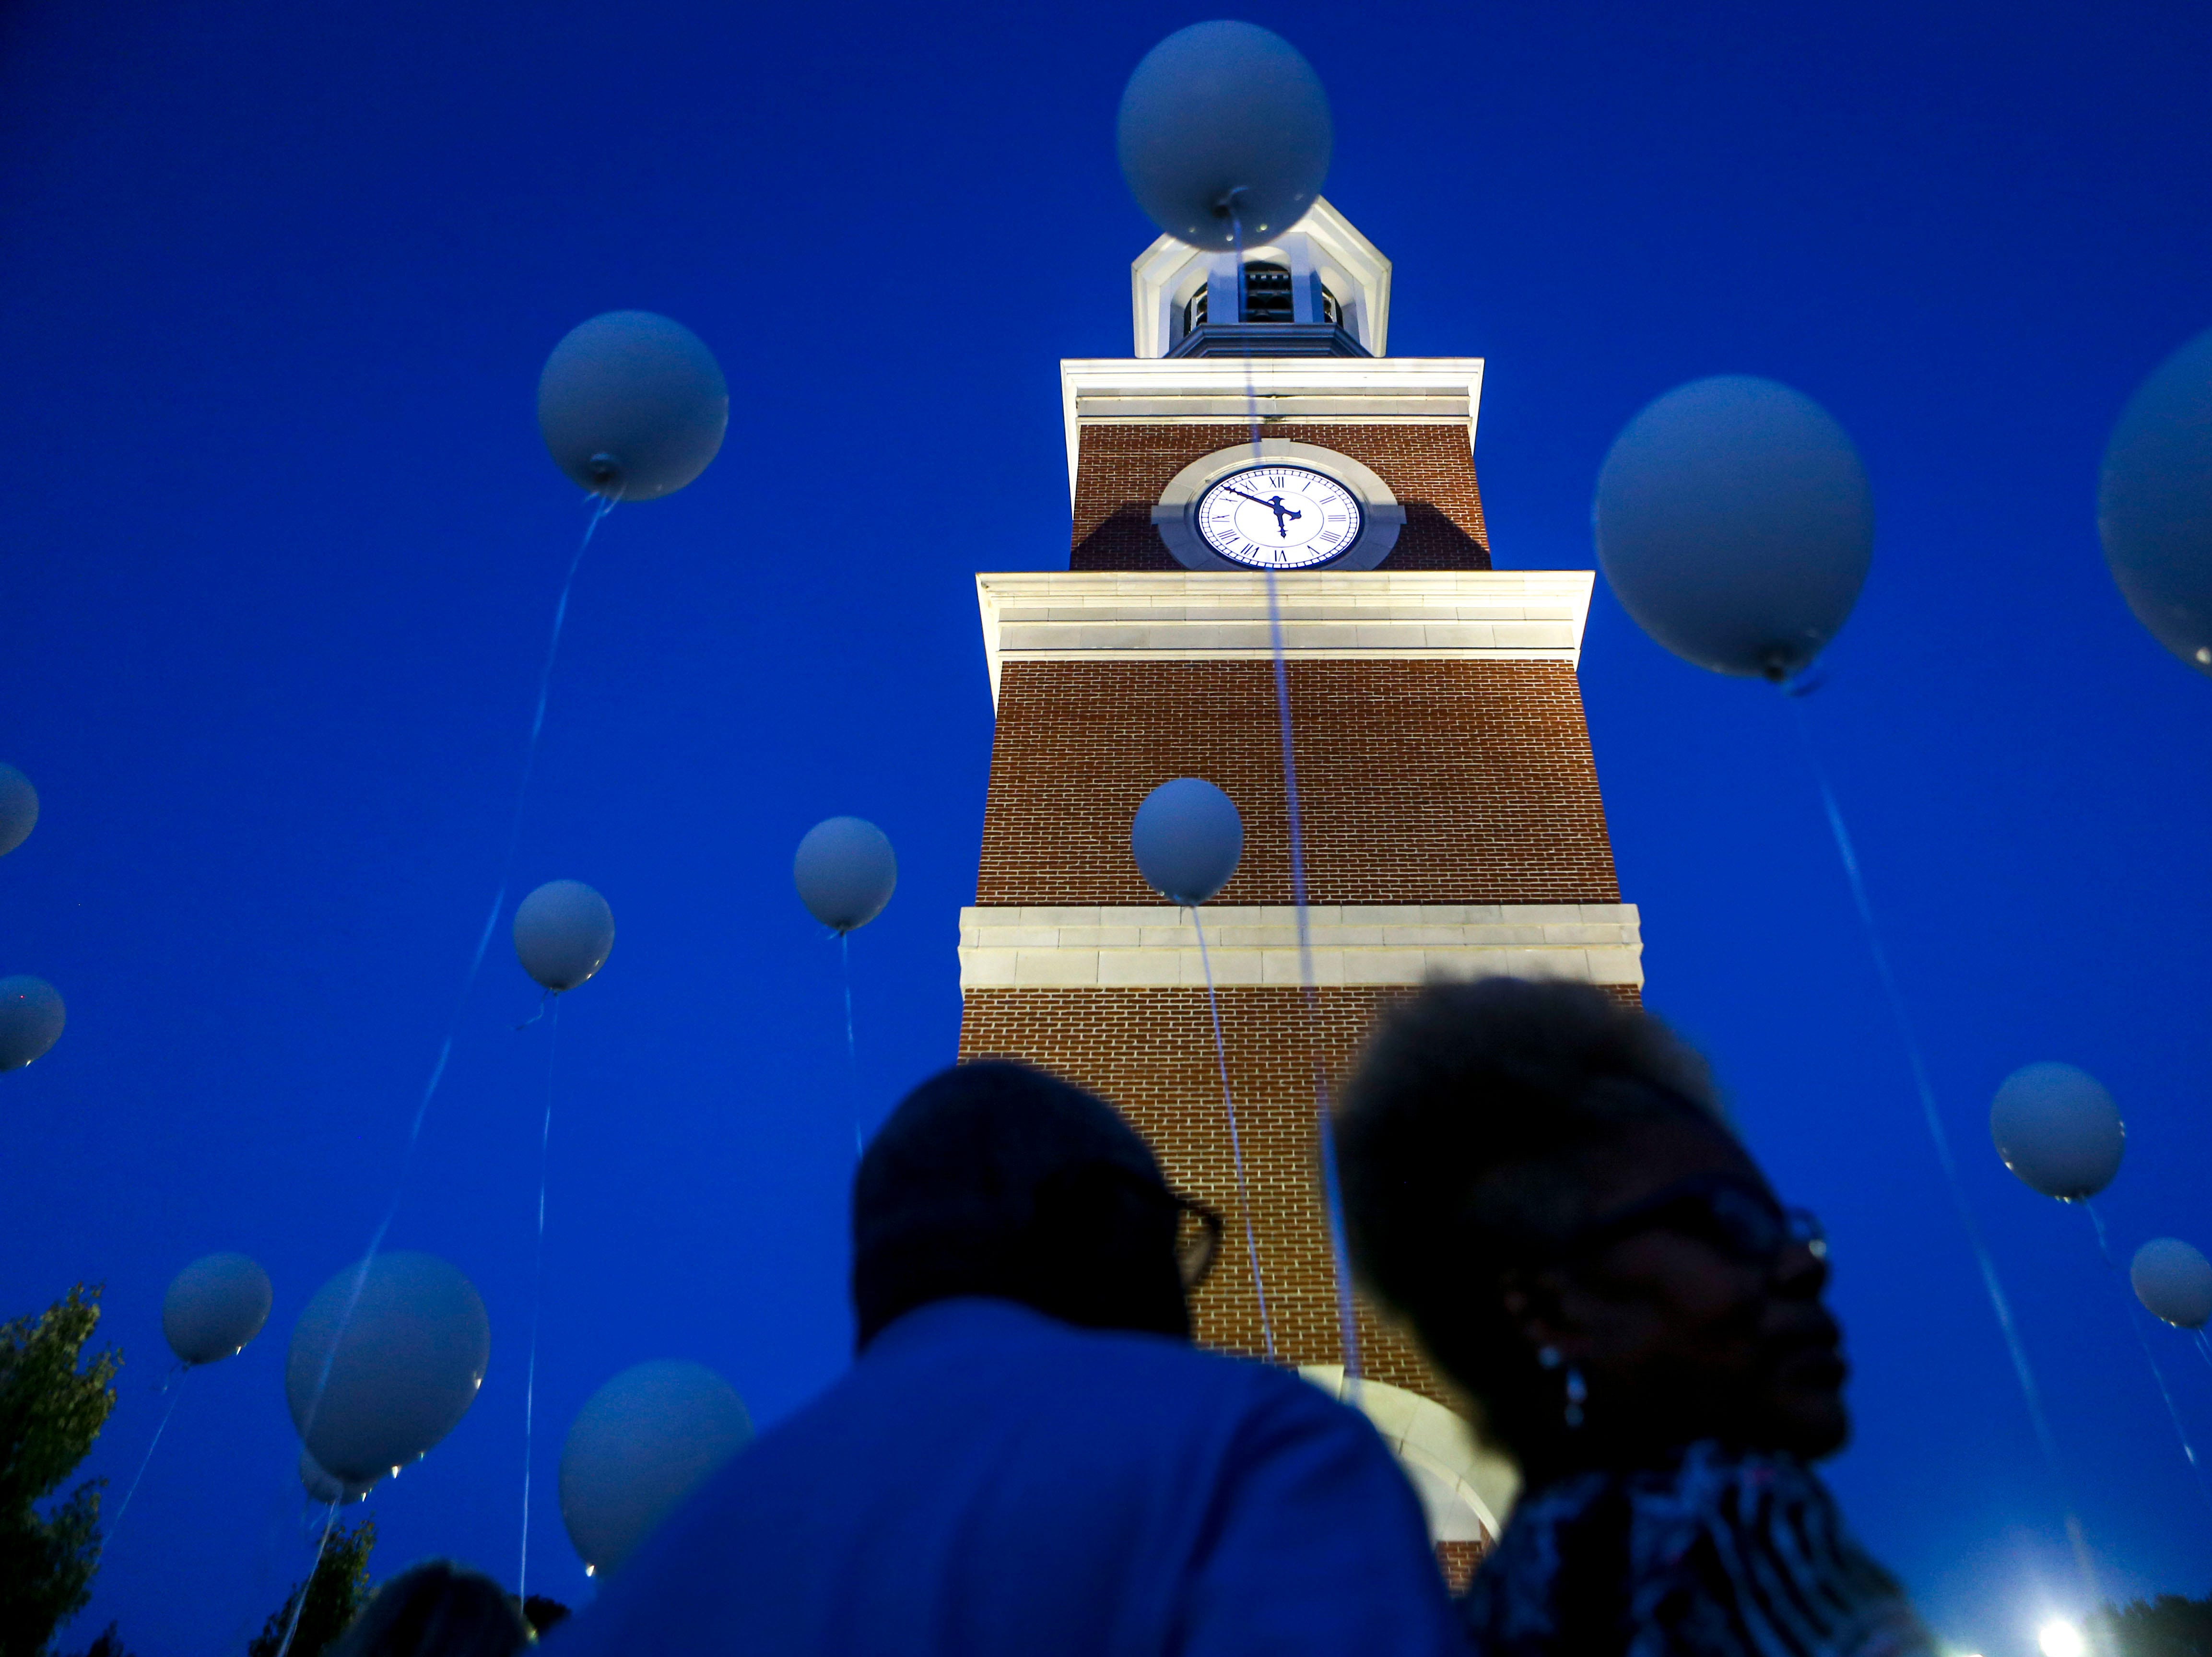 Attendees gather at the base of the clock tower before releasing balloons into the sky during the annual Remember Me Walk hosted at Union University in Jackson, Tenn., on Monday, Oct. 1, 2018.